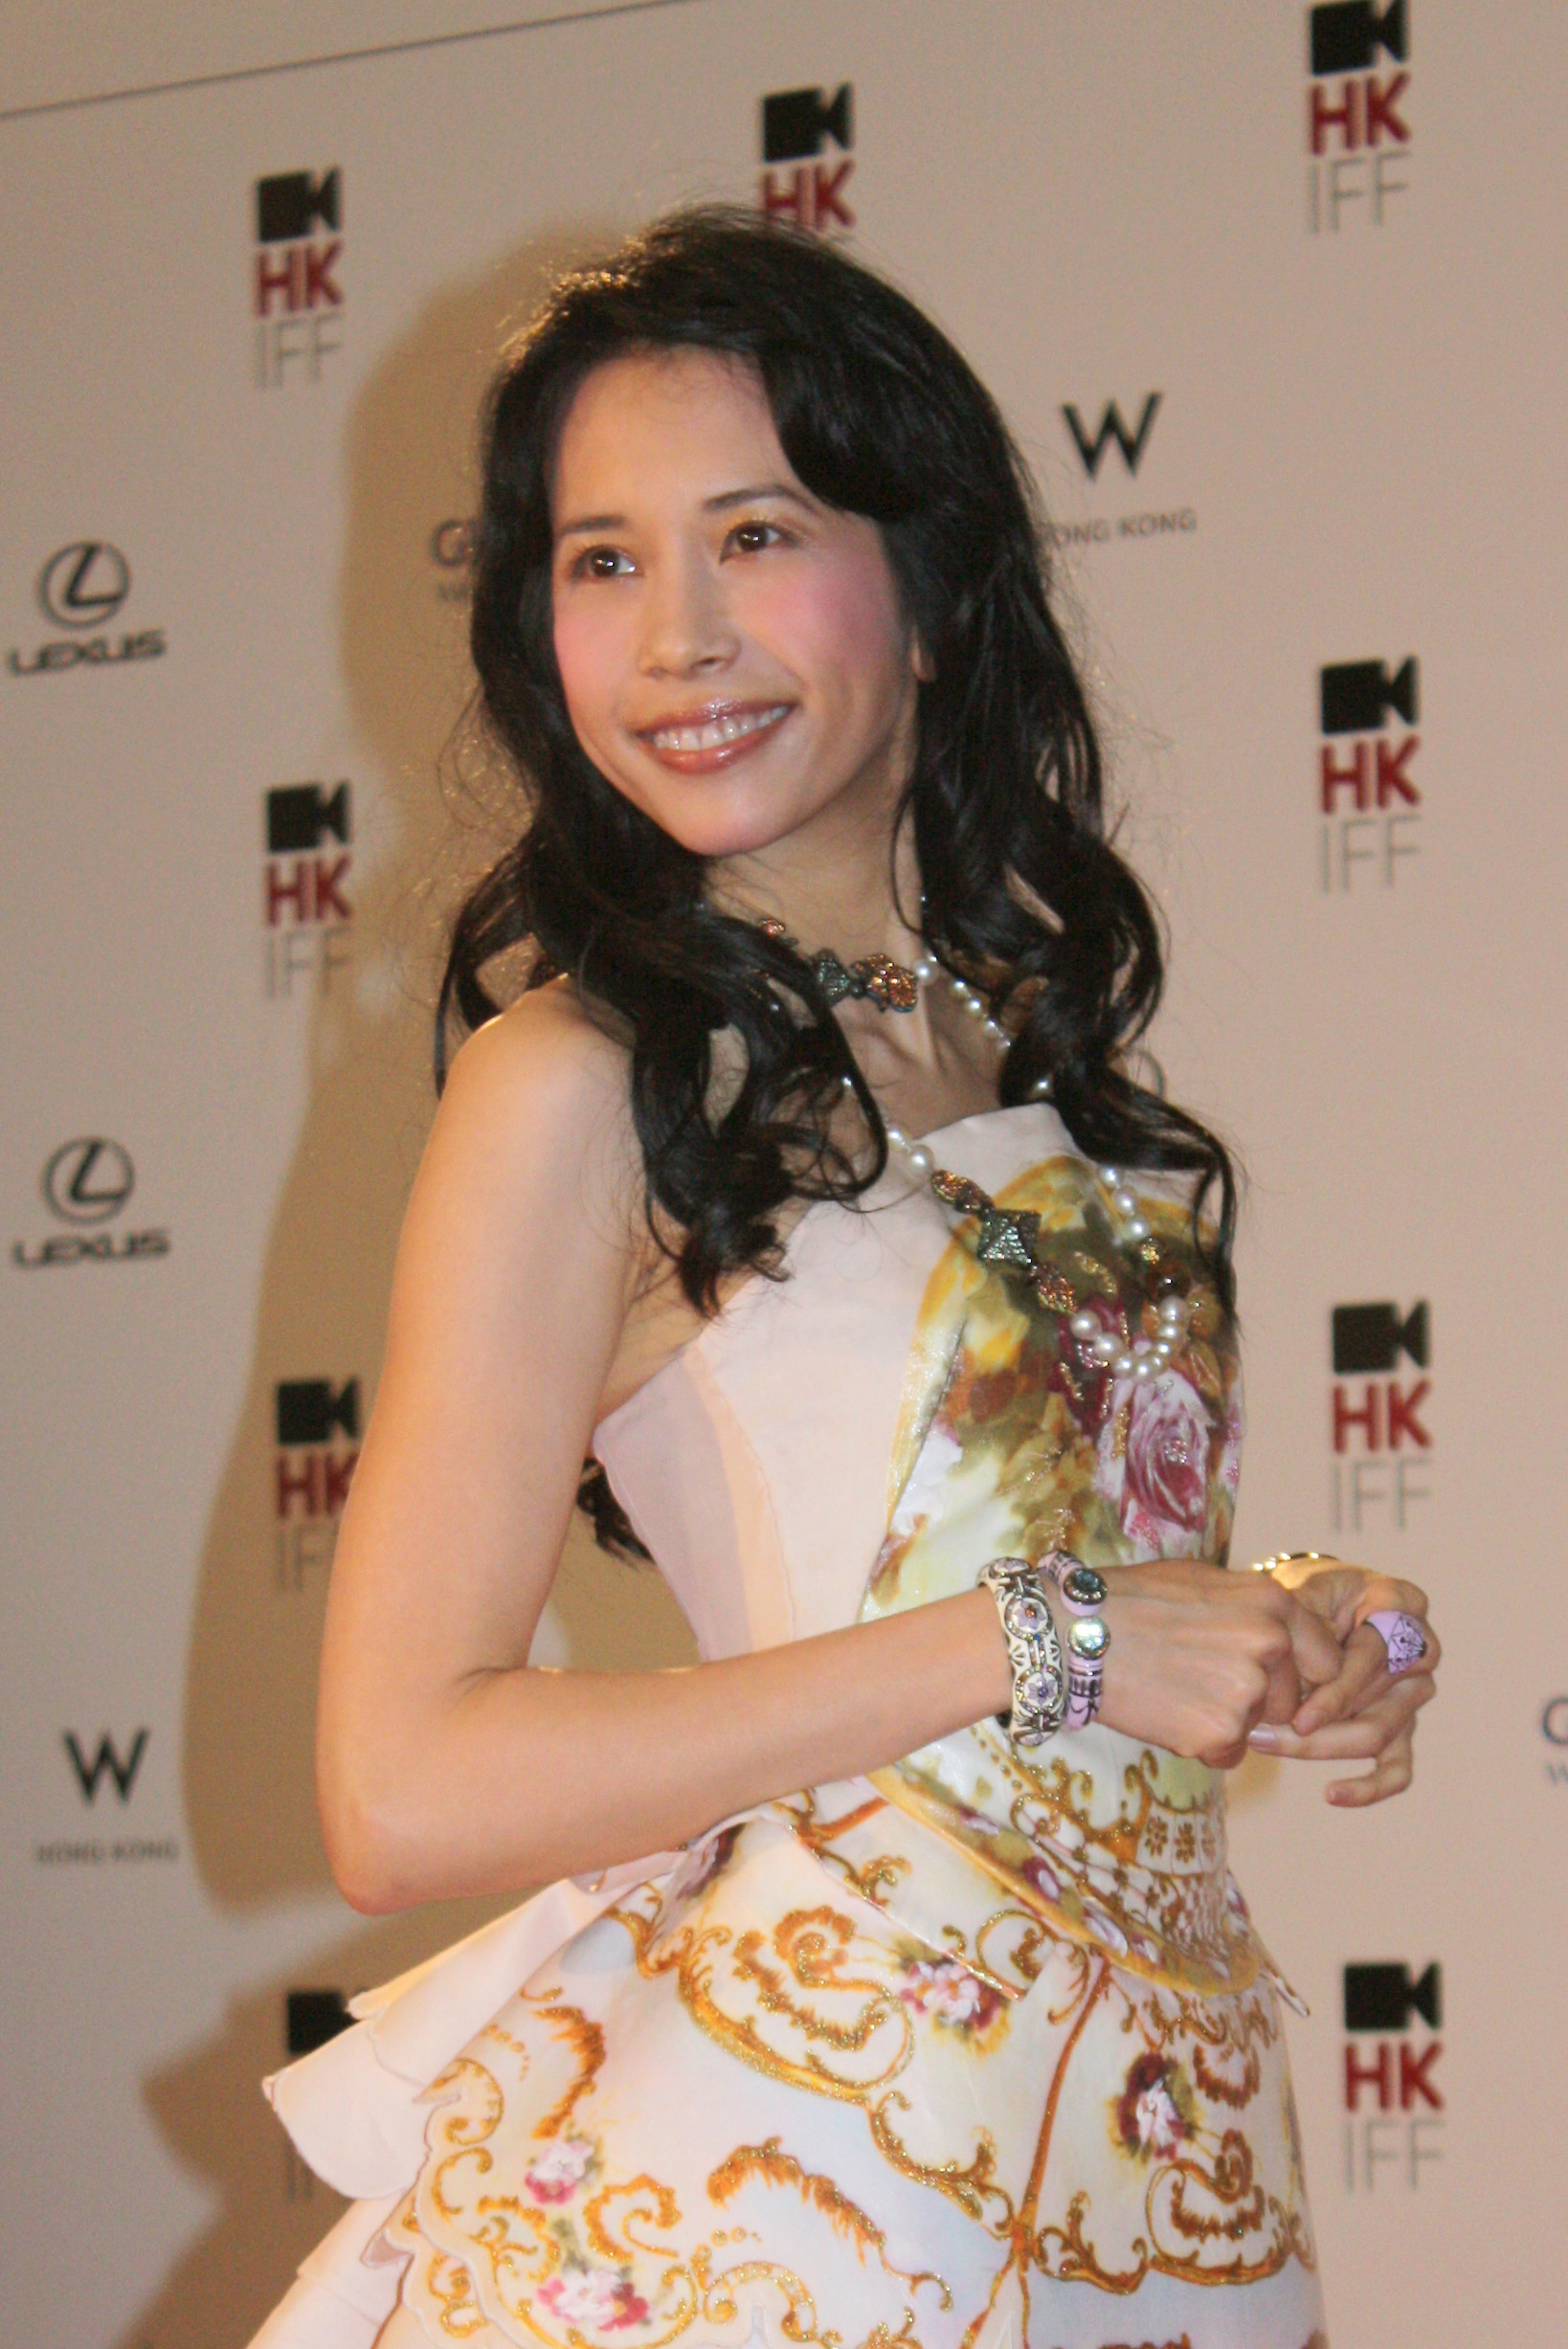 KAREN MOK - Wikipedia, the free encyclopedia